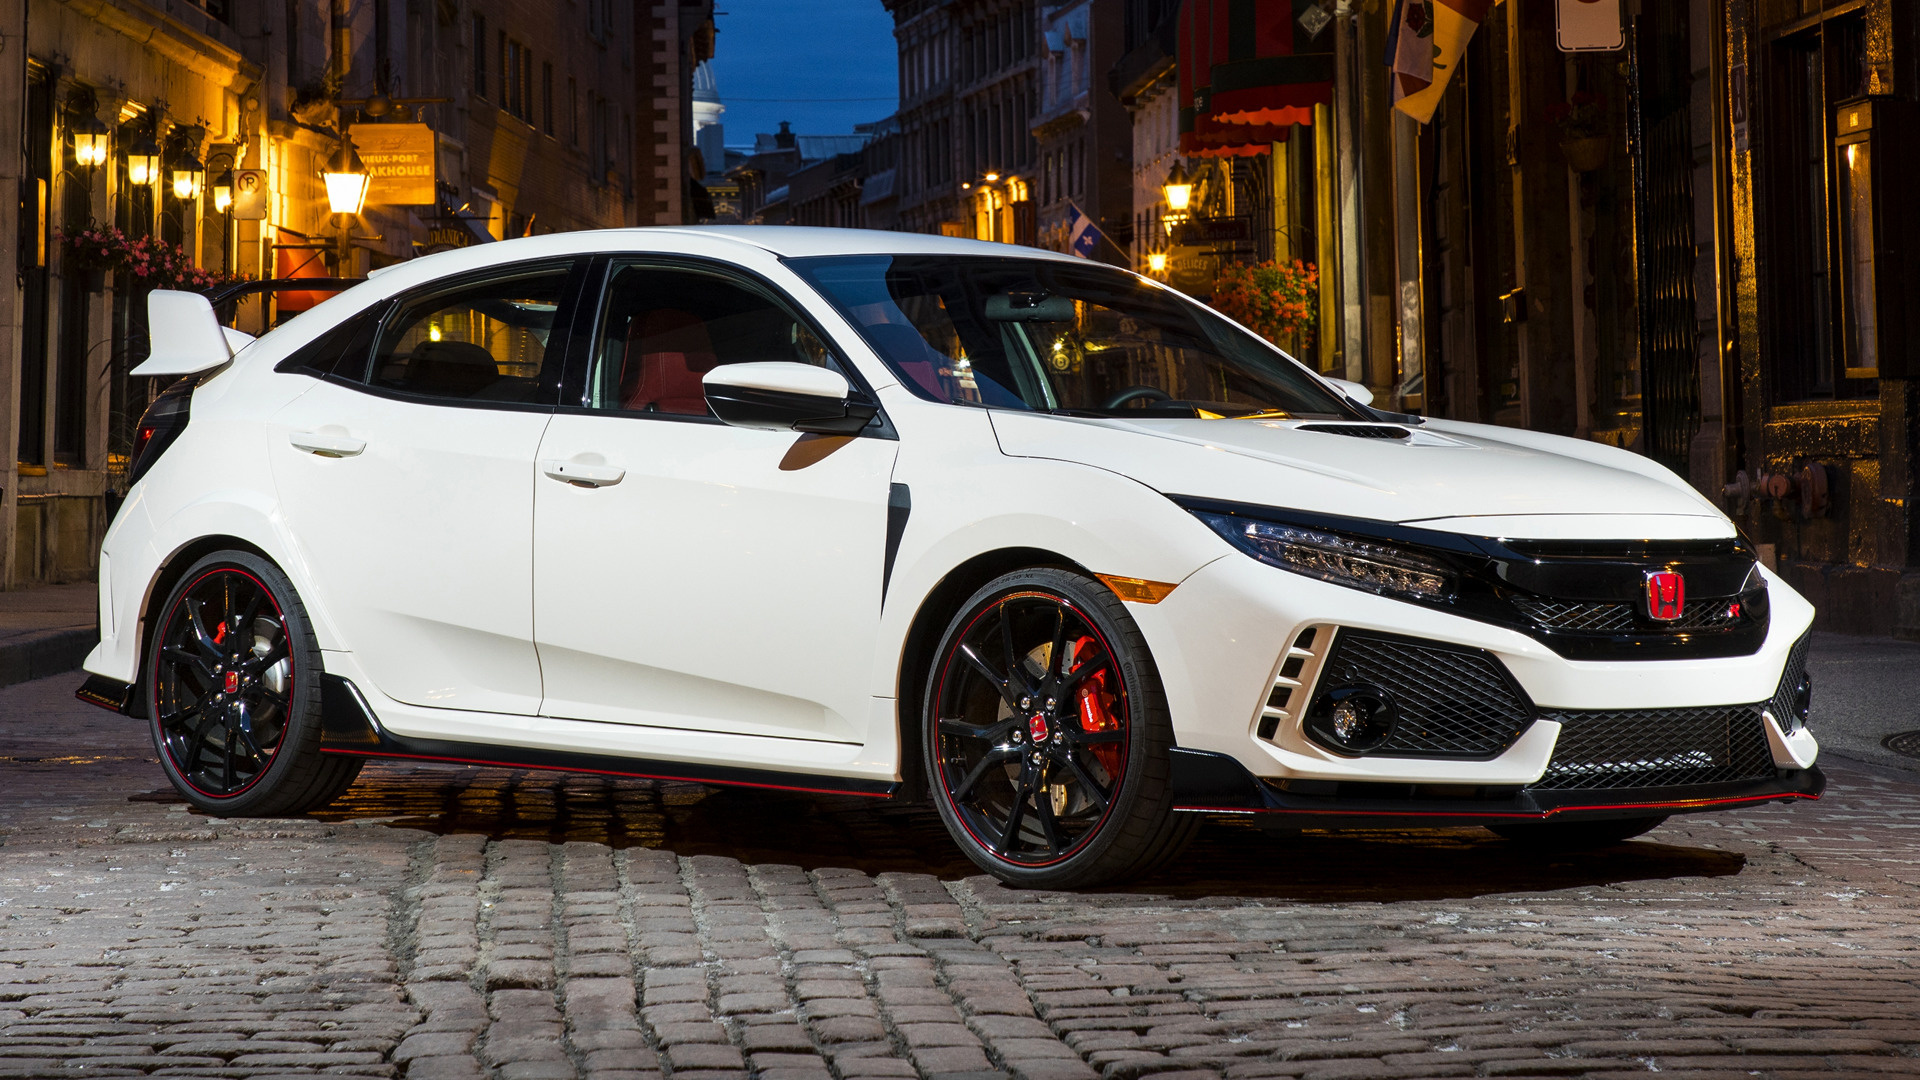 HD 16:9 · Wide 8:5 · Honda Civic Type R ..